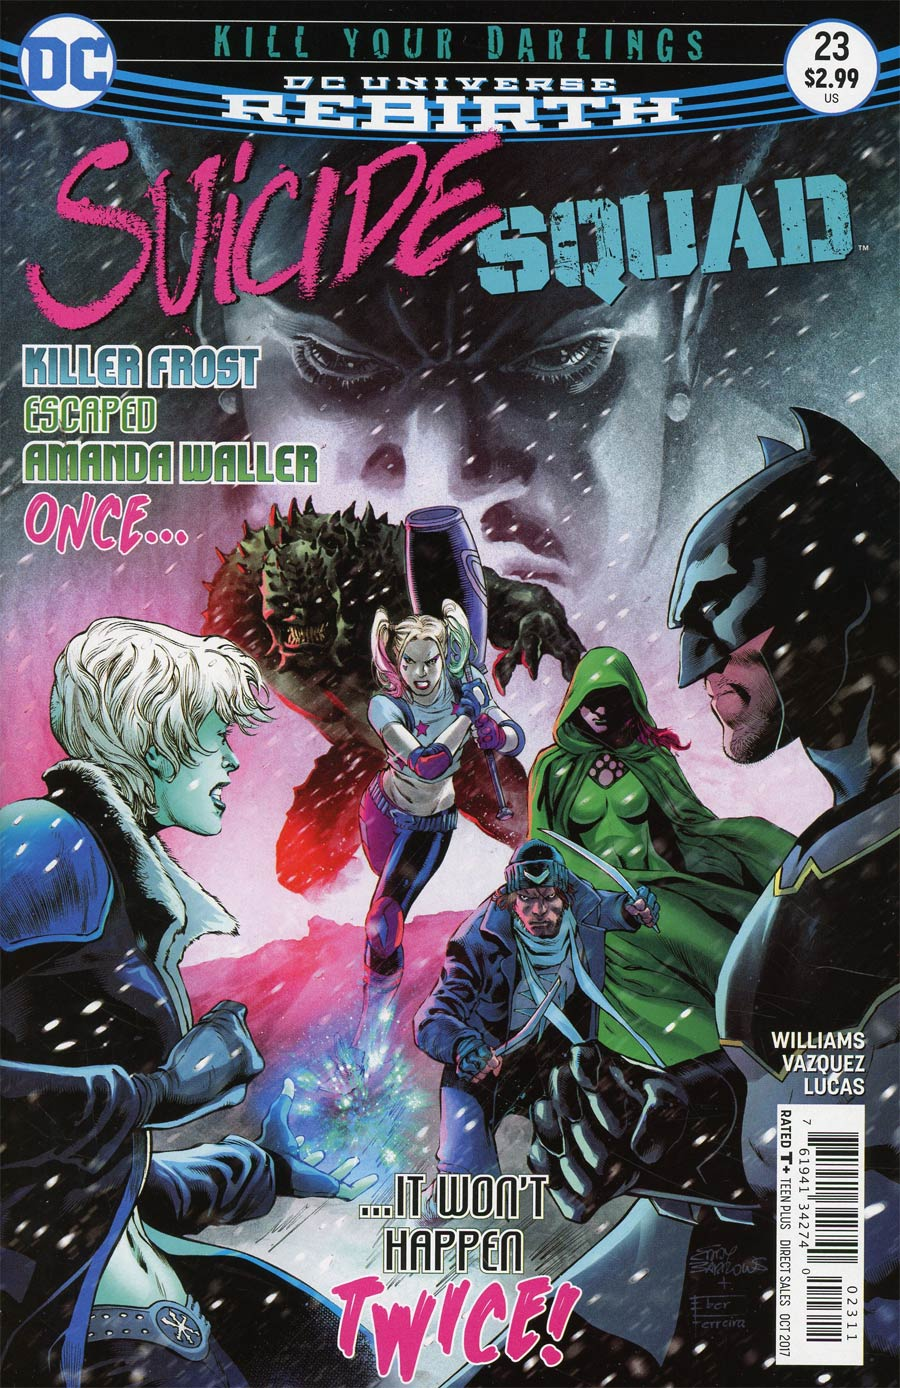 Suicide Squad 23 - Kill your Darlings 3